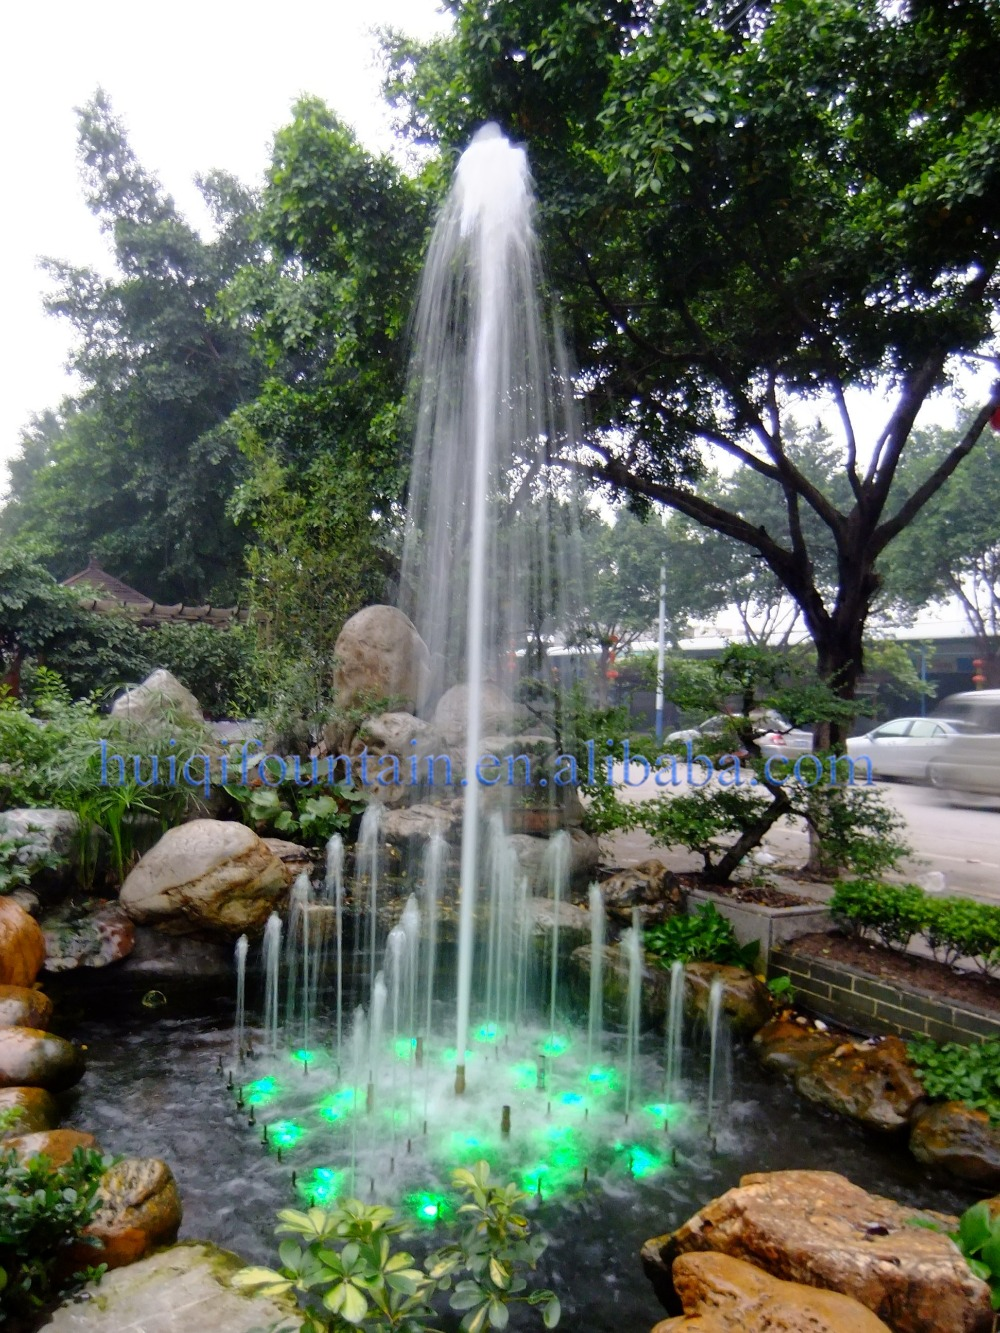 Customized large angel outdoor water umbrella fountains for Waterfall fountain